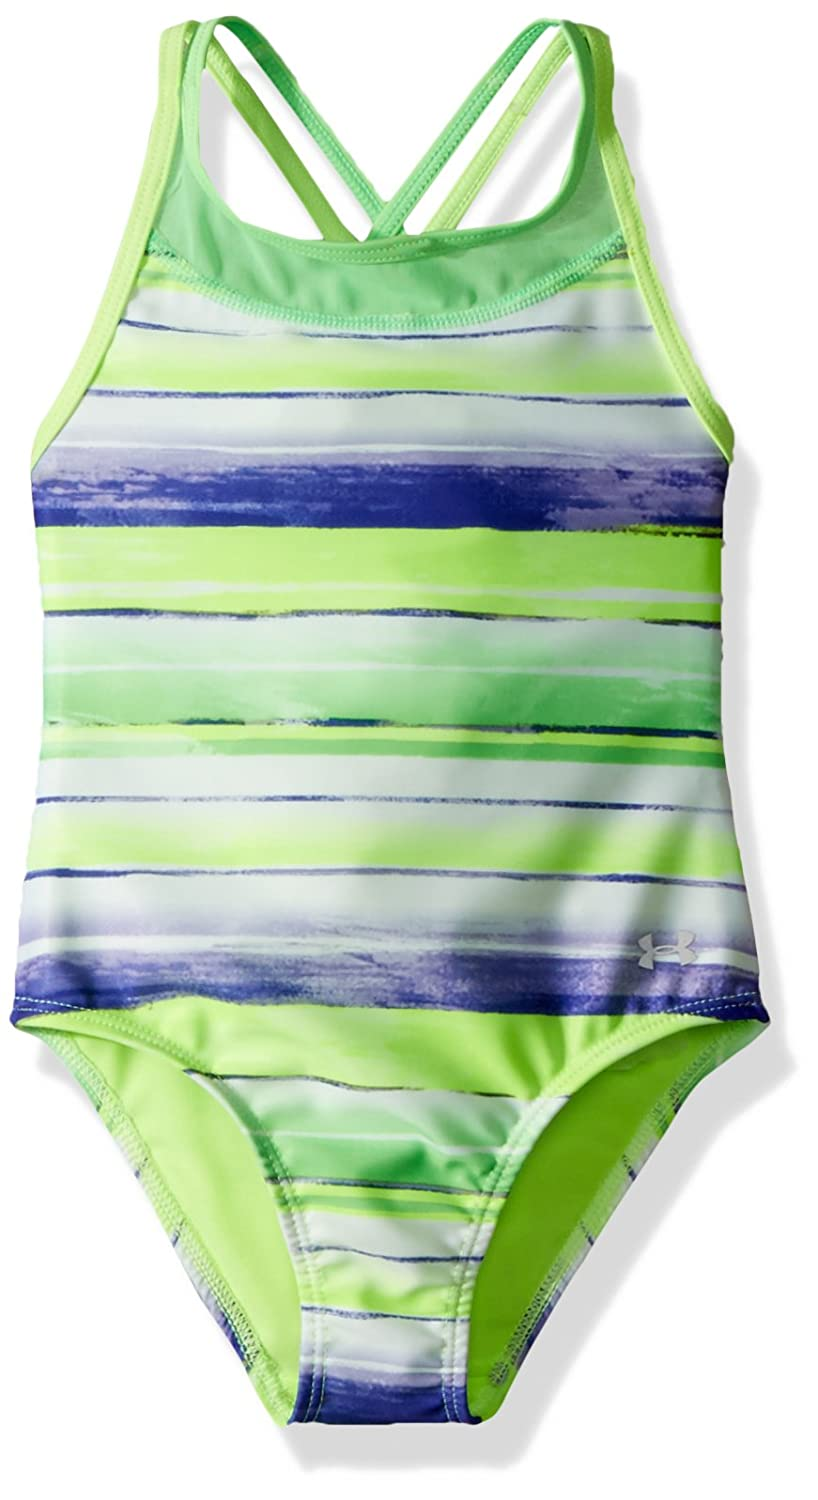 Under Armour Girls Oasis One Piece Swimsuit One Piece Swimsuit